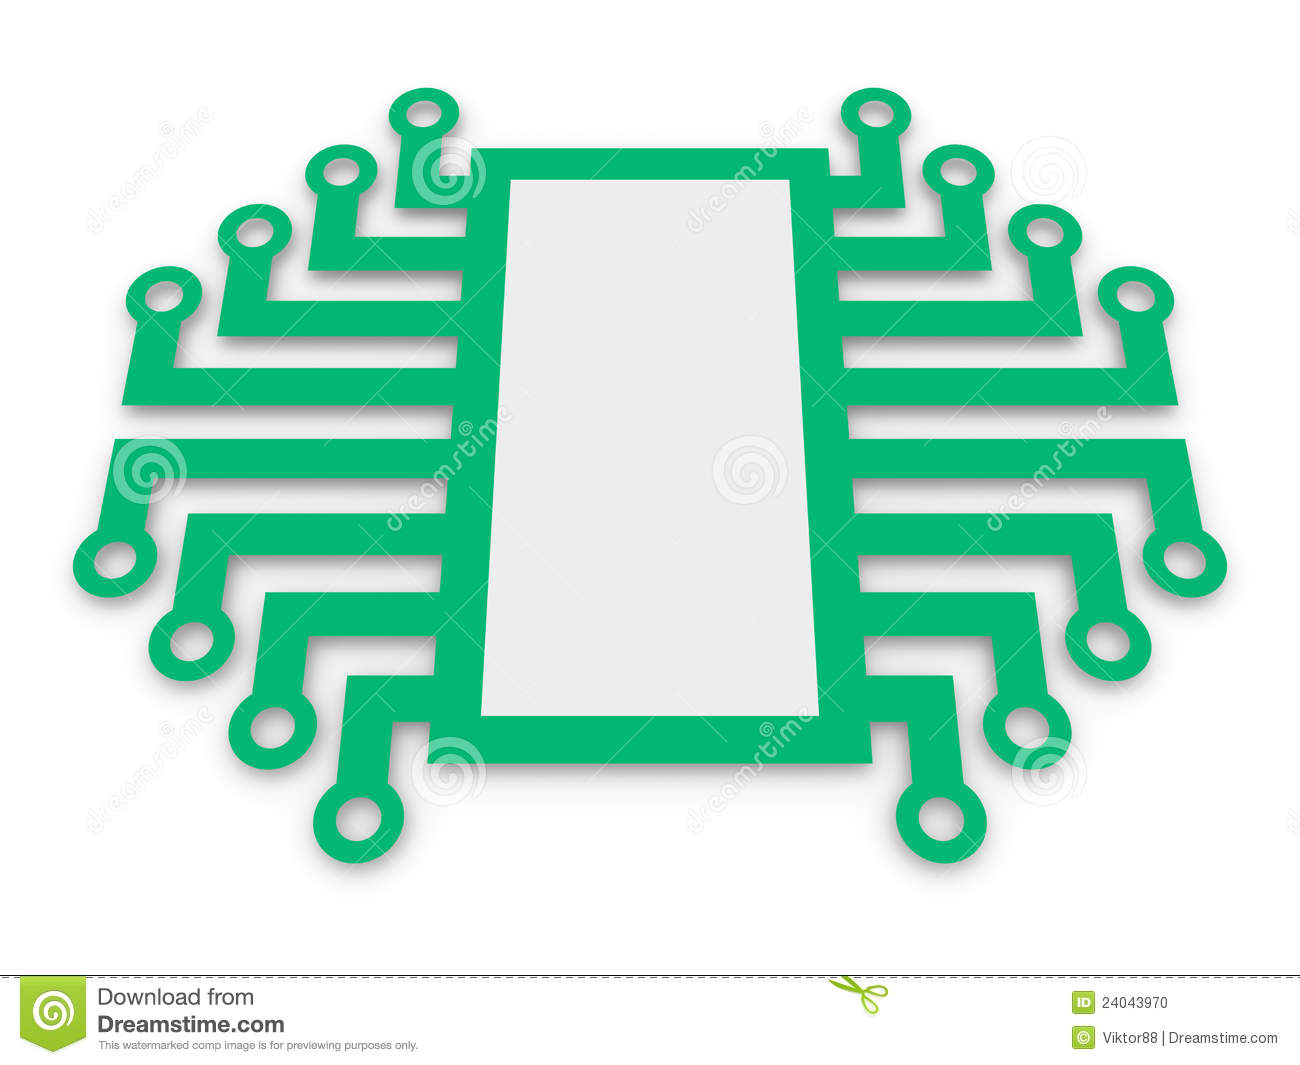 Symbol Of Electronic Microchip Stock Photo - Image: 24043970